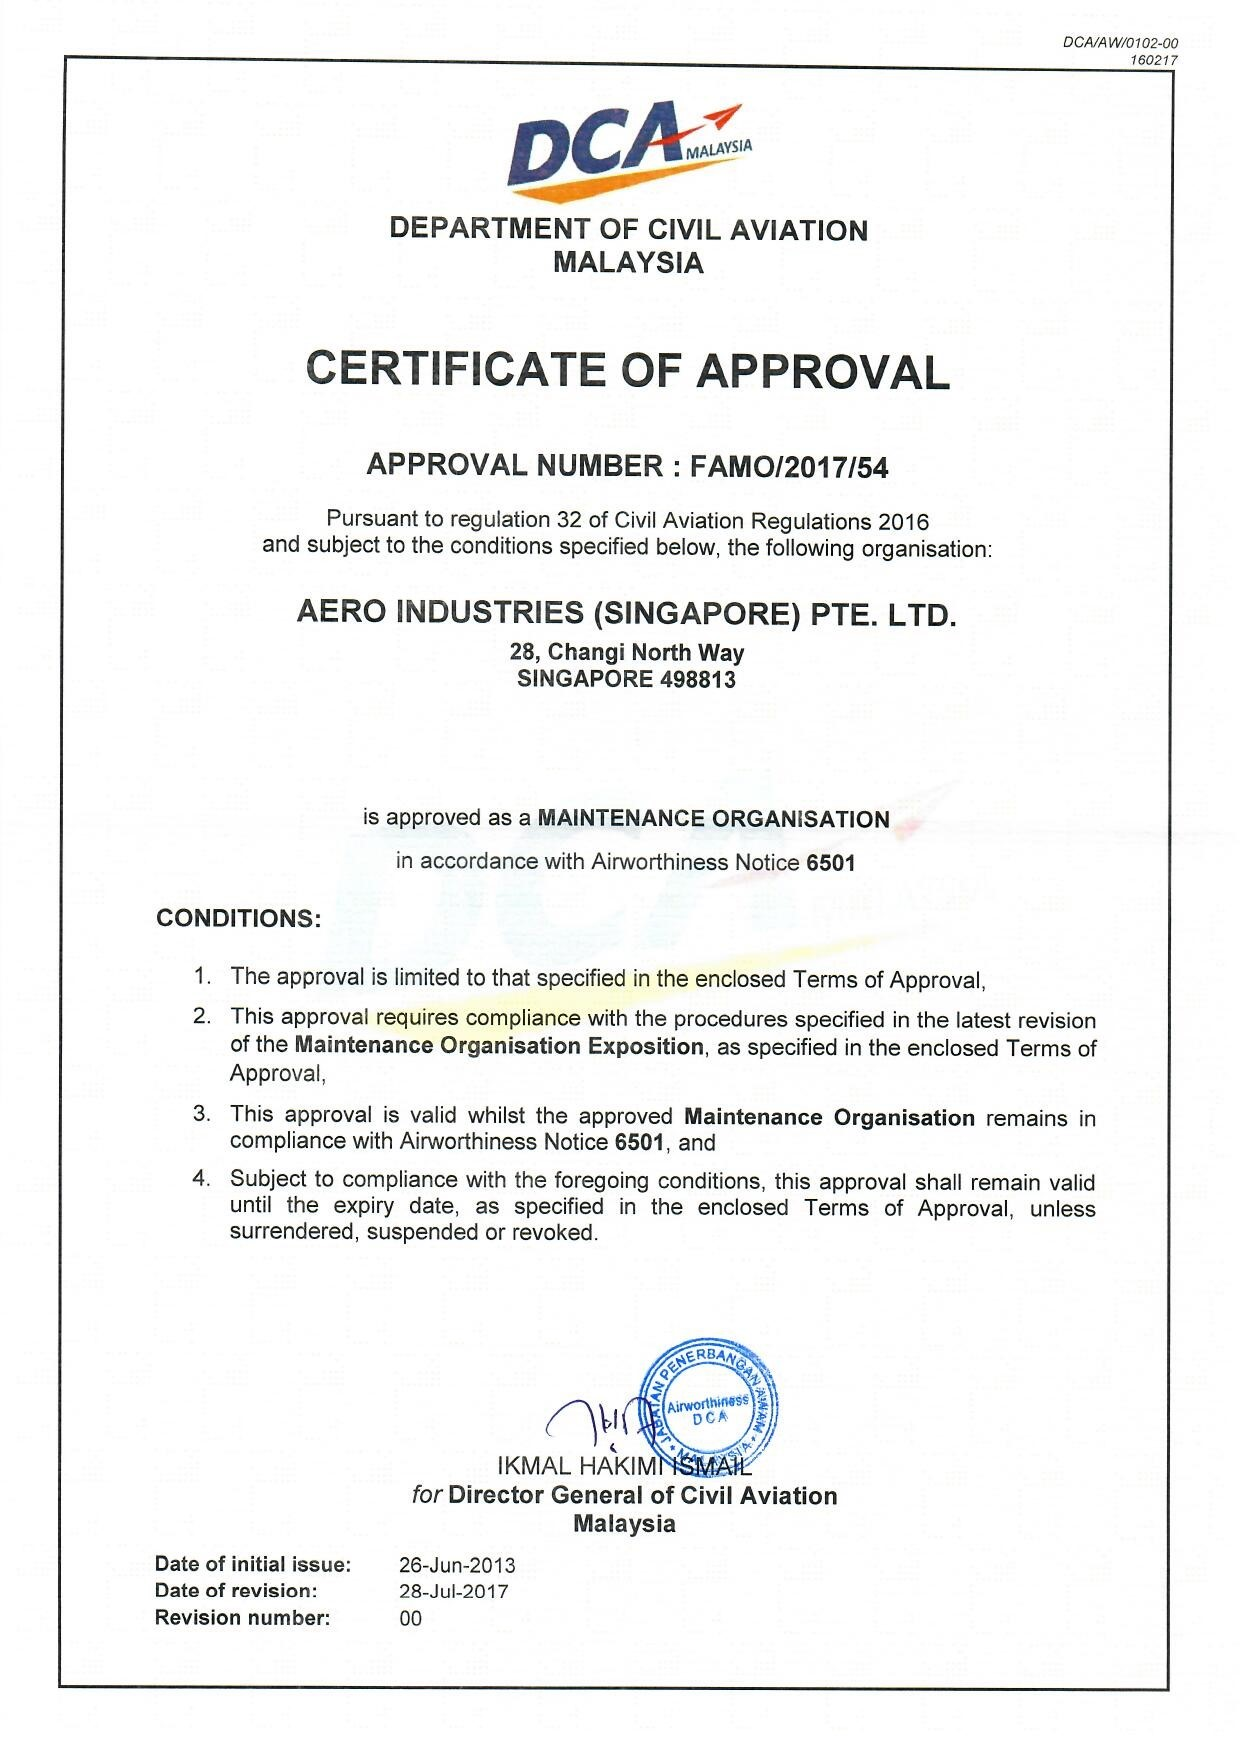 DCAM 145 Approval Certificate